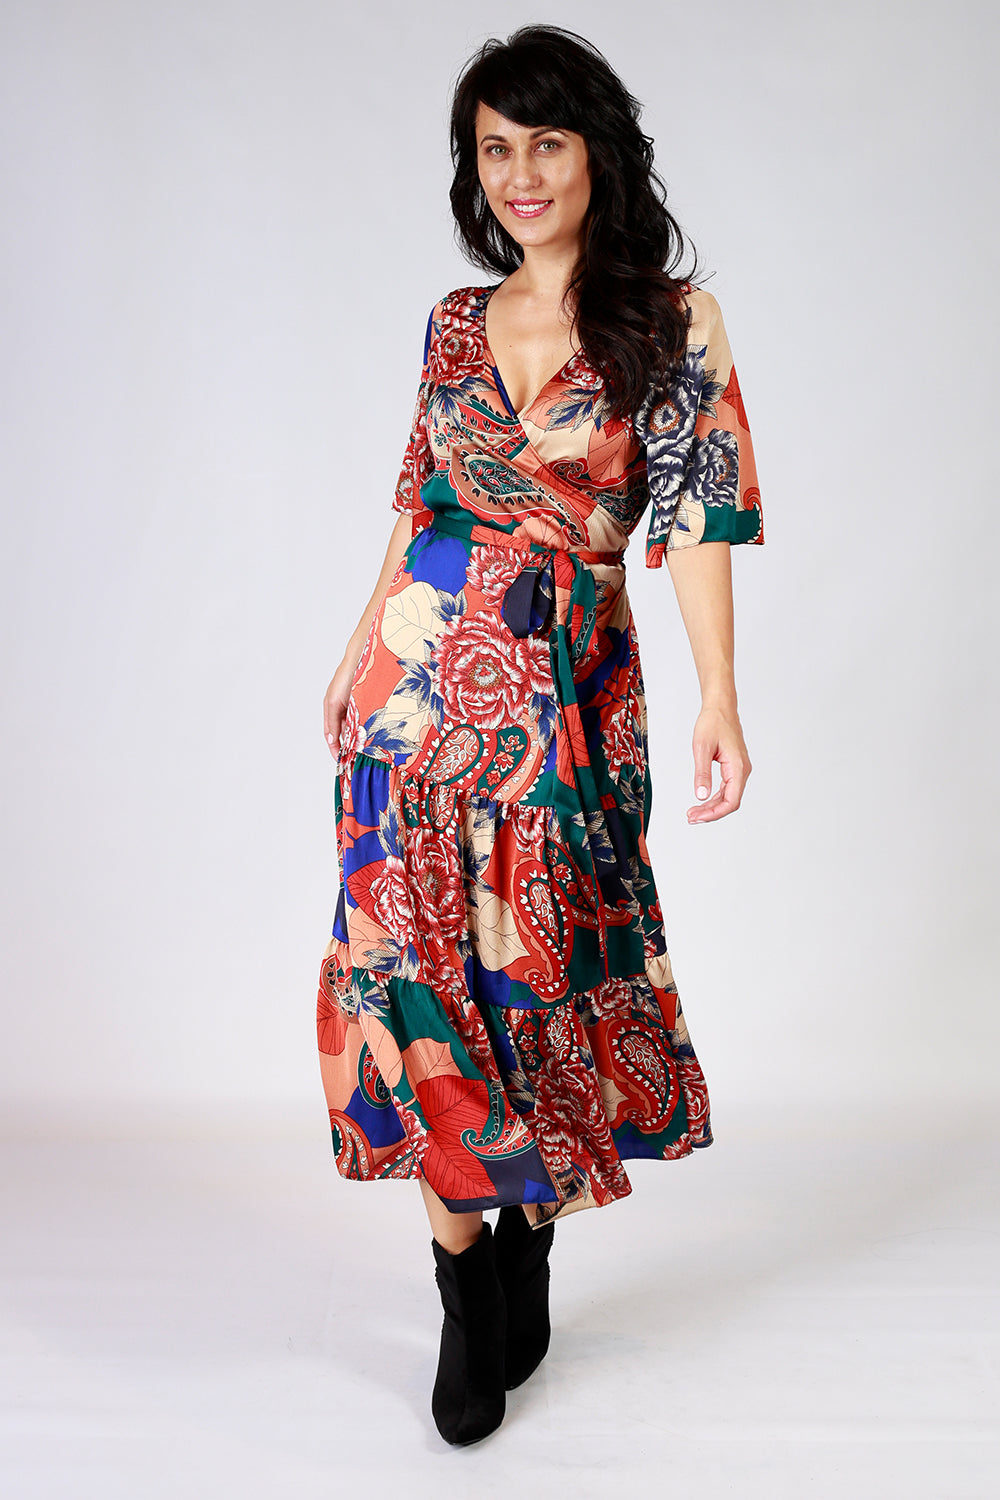 Maddly Mertle Dress | Gypsy Fare AW20 | Annah Stretton | Wrap Dress | Annah Stretton Fashion | Designer Fashion | Floral Dress | Polka Dots | Designer Dress | Boho Dress NZ | Annah Stretton NZ | Designer Fashion NZ | Evening Dresses NZ | Wrap Dresses NZ